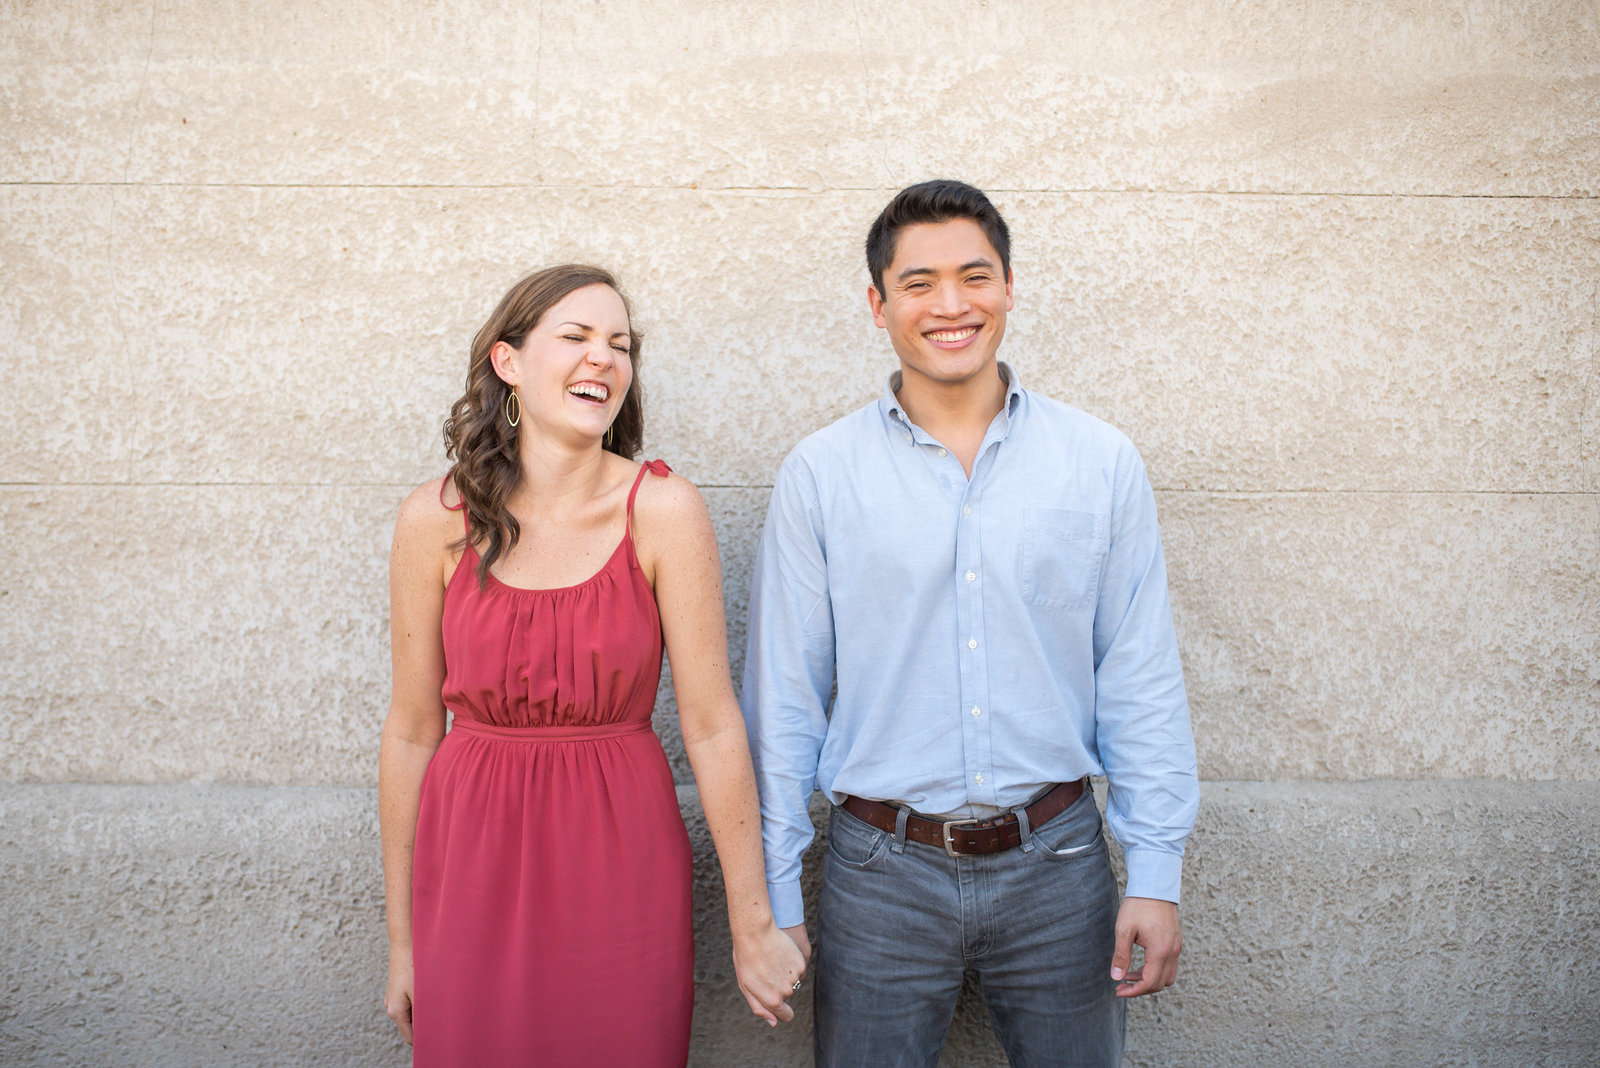 fun engagement photography couple laughing